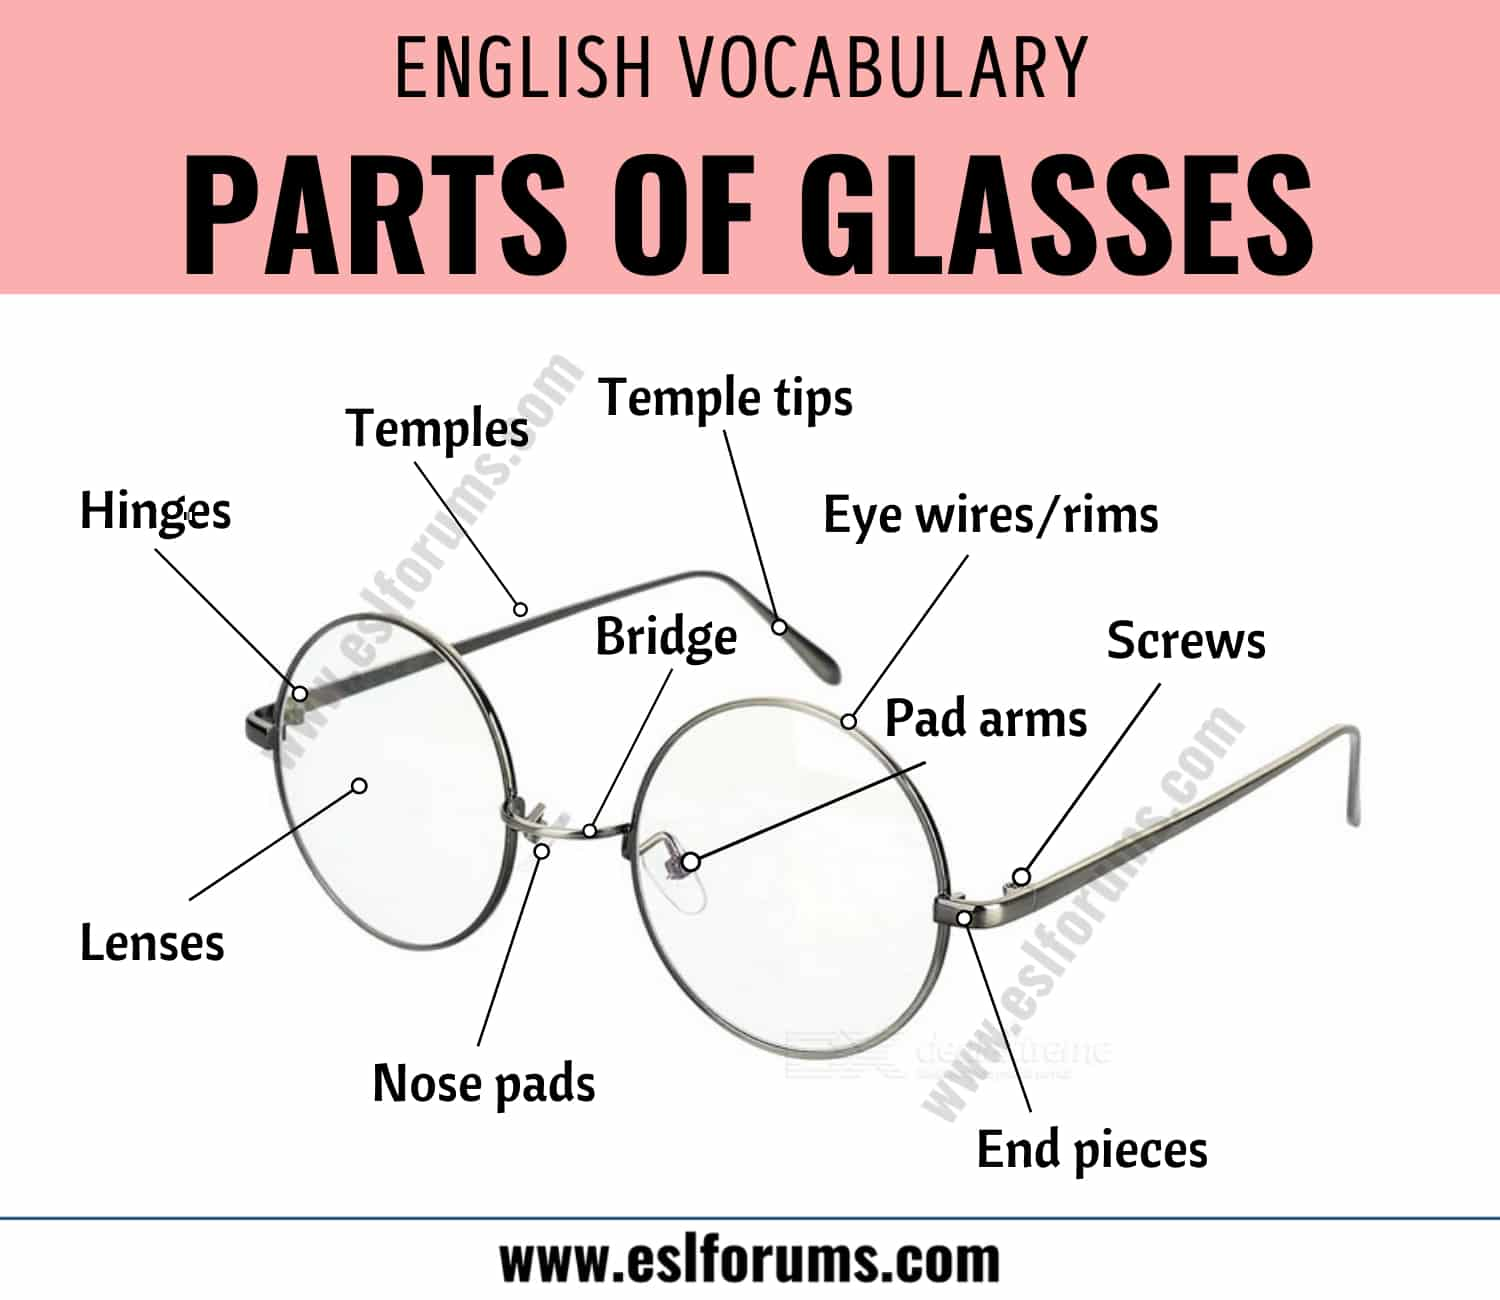 Parts of Glasses: Different Parts of Glasses with ESL Picture! 2